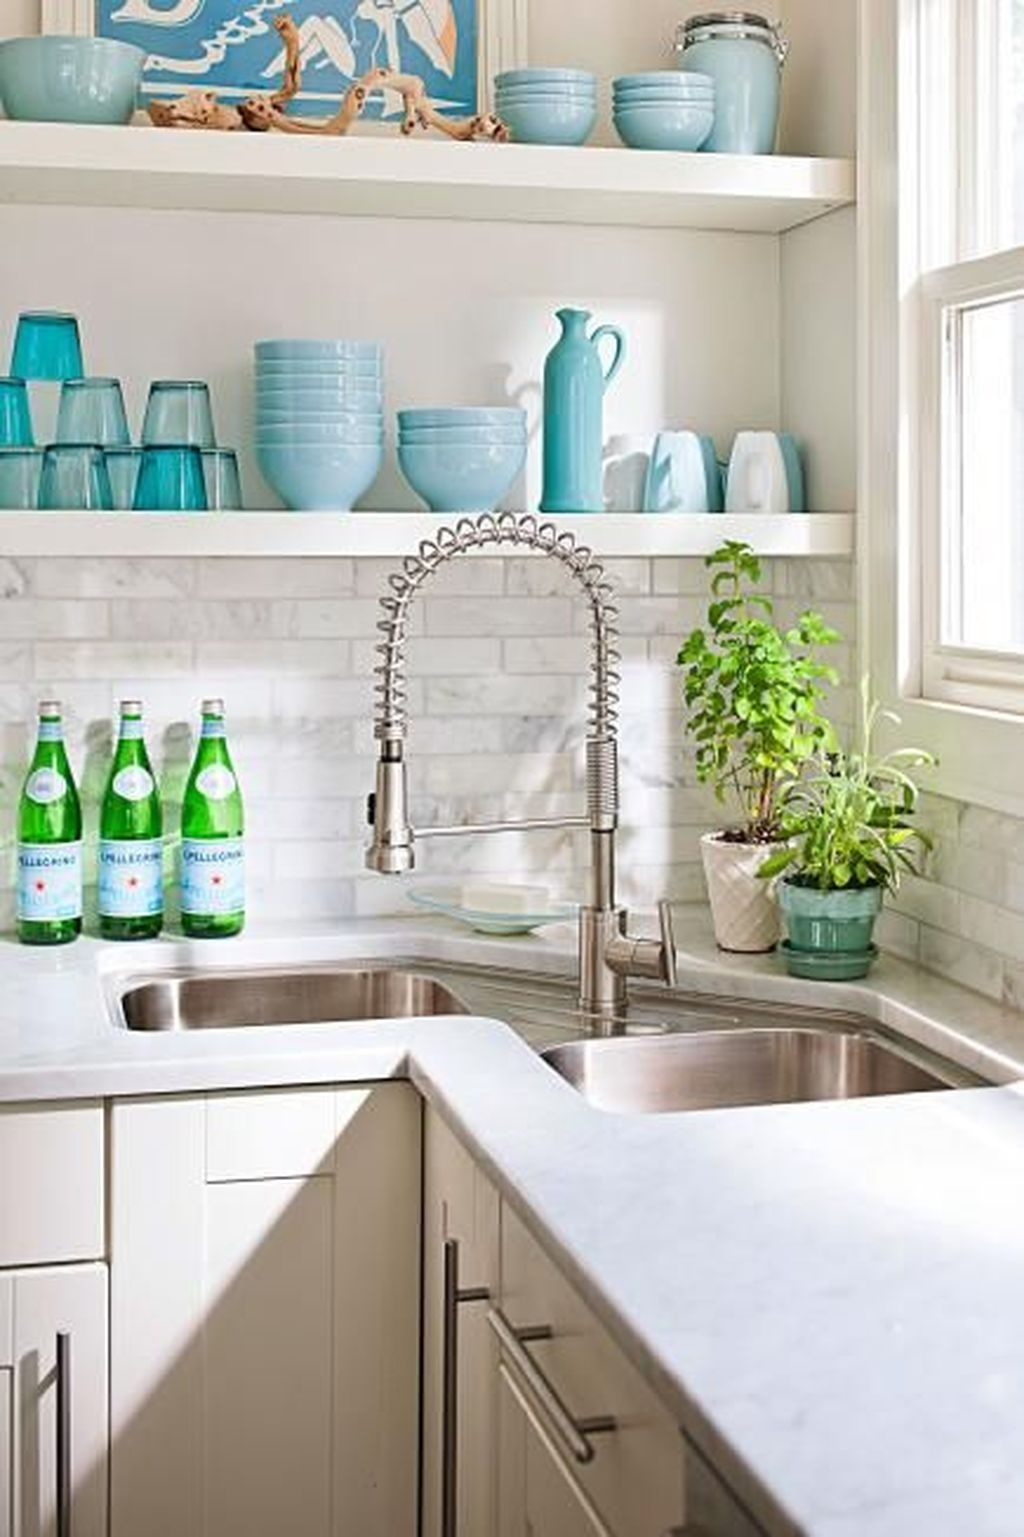 Outstanding Sink Ideas For Kitchen Home You Should Try02